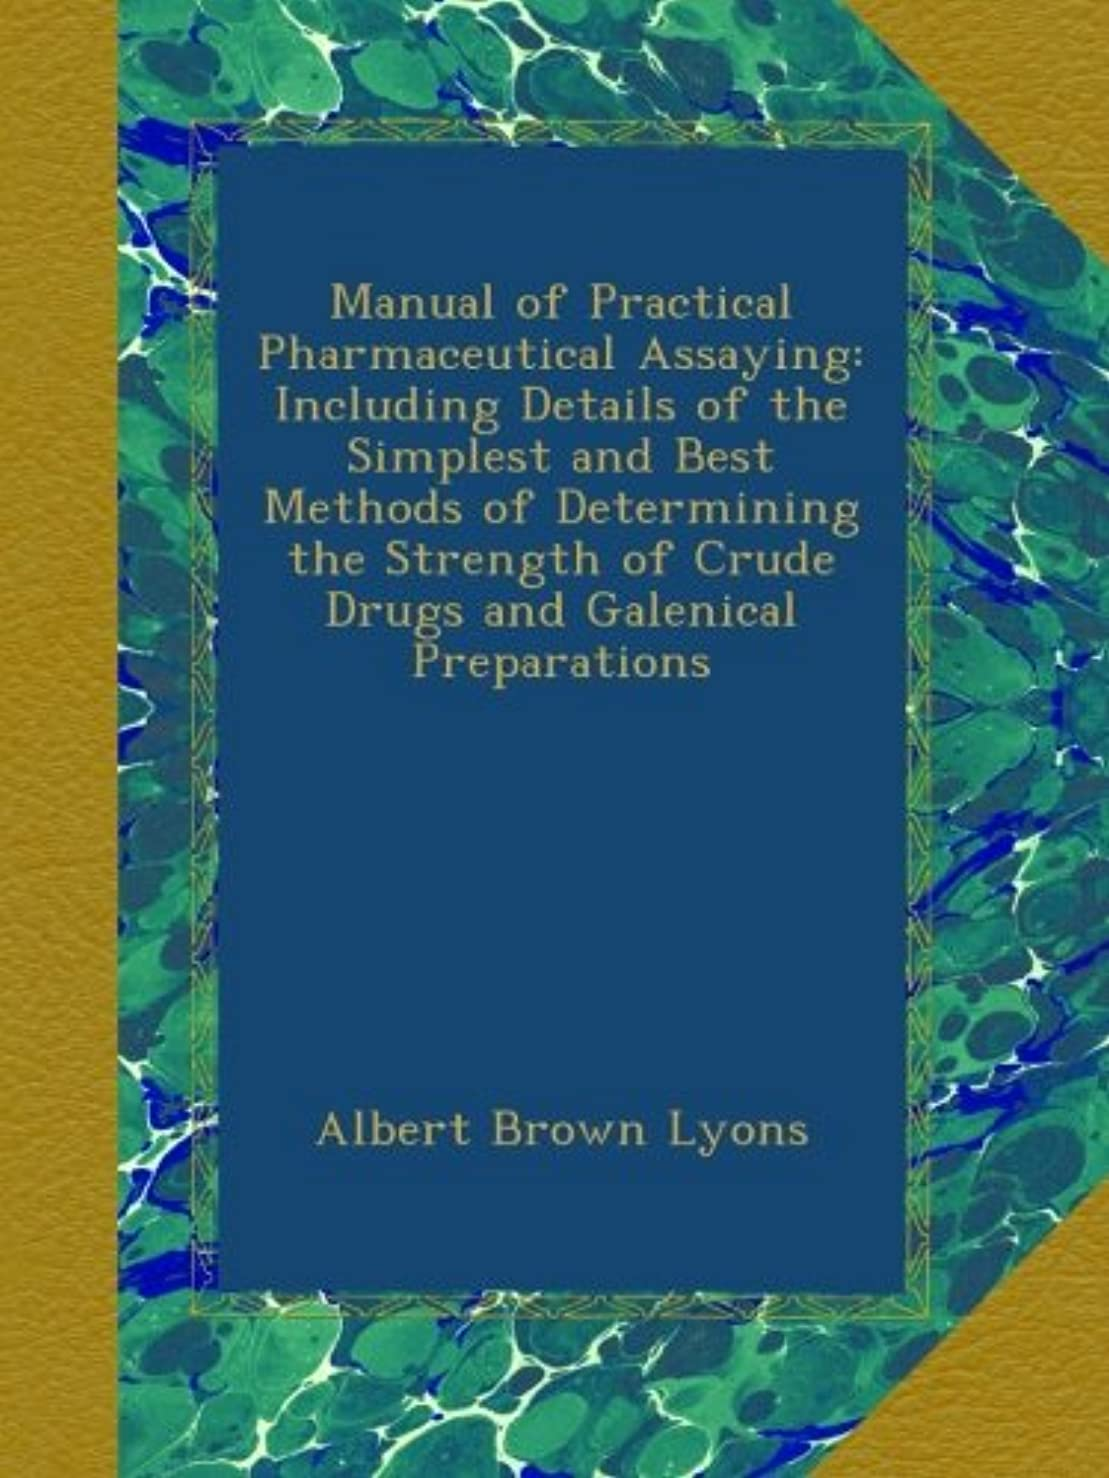 アリス落胆したおじさんManual of Practical Pharmaceutical Assaying: Including Details of the Simplest and Best Methods of Determining the Strength of Crude Drugs and Galenical Preparations